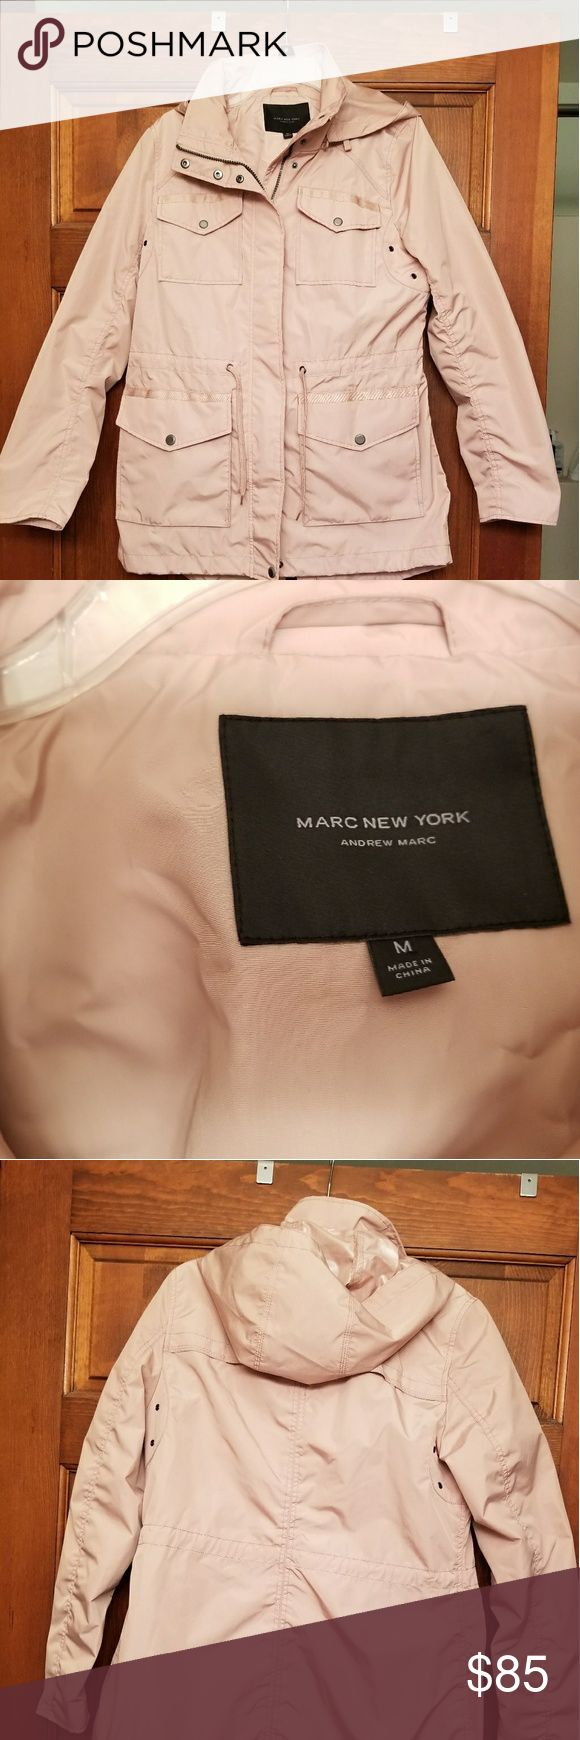 Marc New York Shilowe Cargo Rain Jacket Cute hi lo hem, blush nude, rain jacket from Stitch Fix. Worn once, was a little tight in the shoulders for me. Perfect for spring into summer! Marc New York / Stitch Fix Jackets & Coats Trench Coats